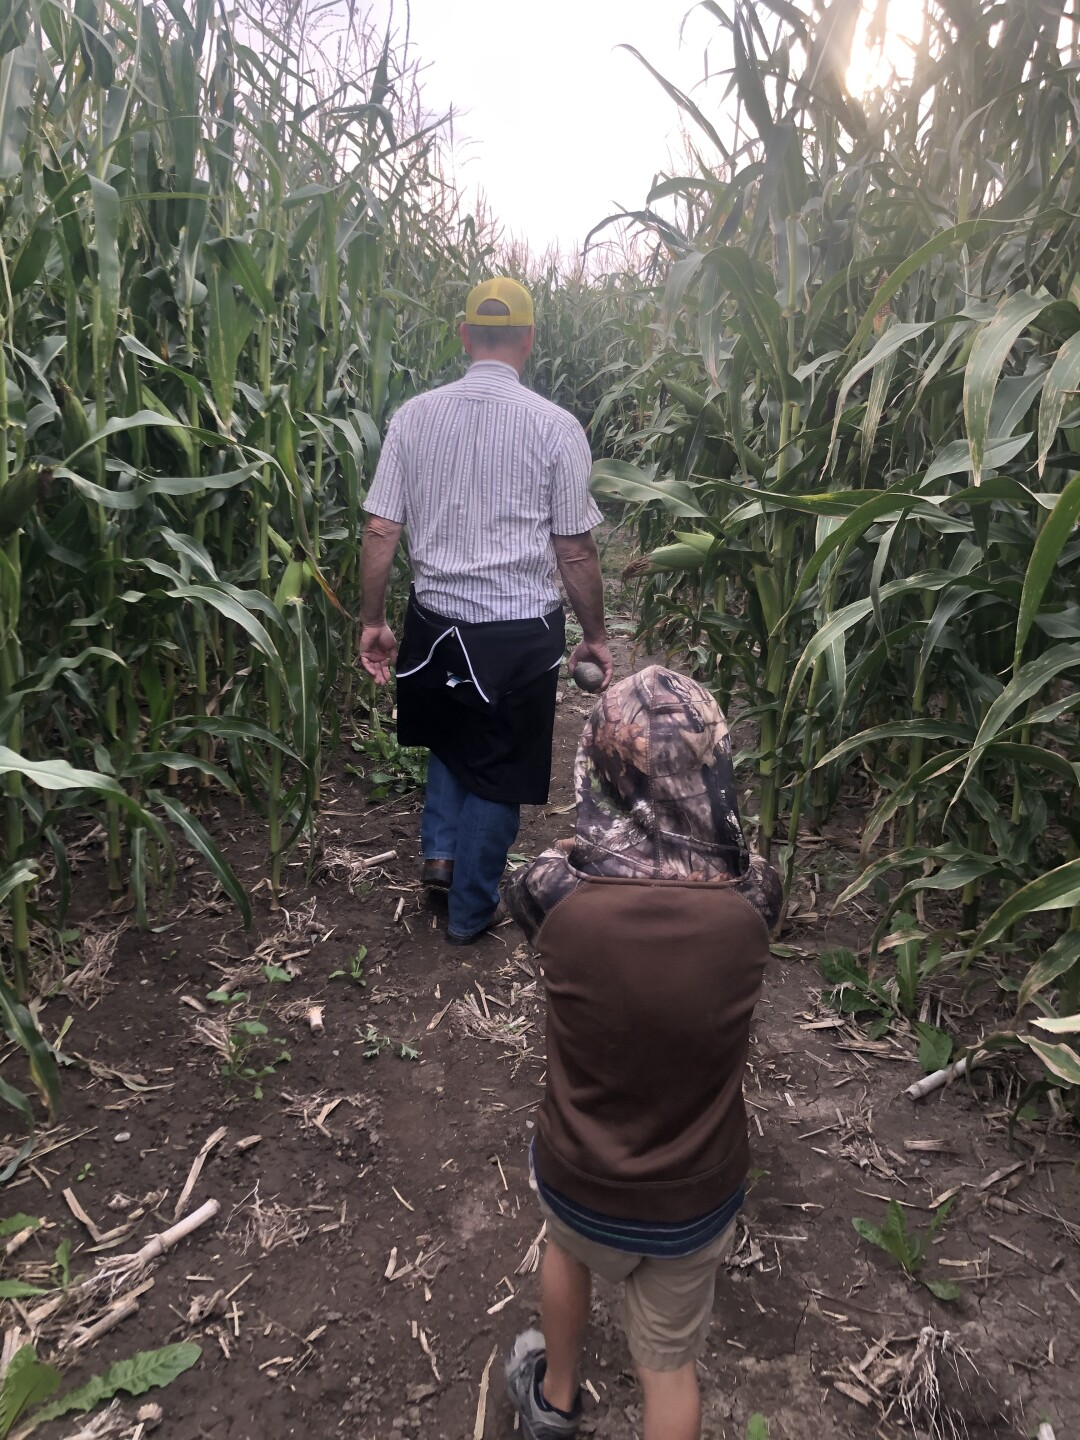 Townsend farm offers family fun with pumpkin patch and corn mazes